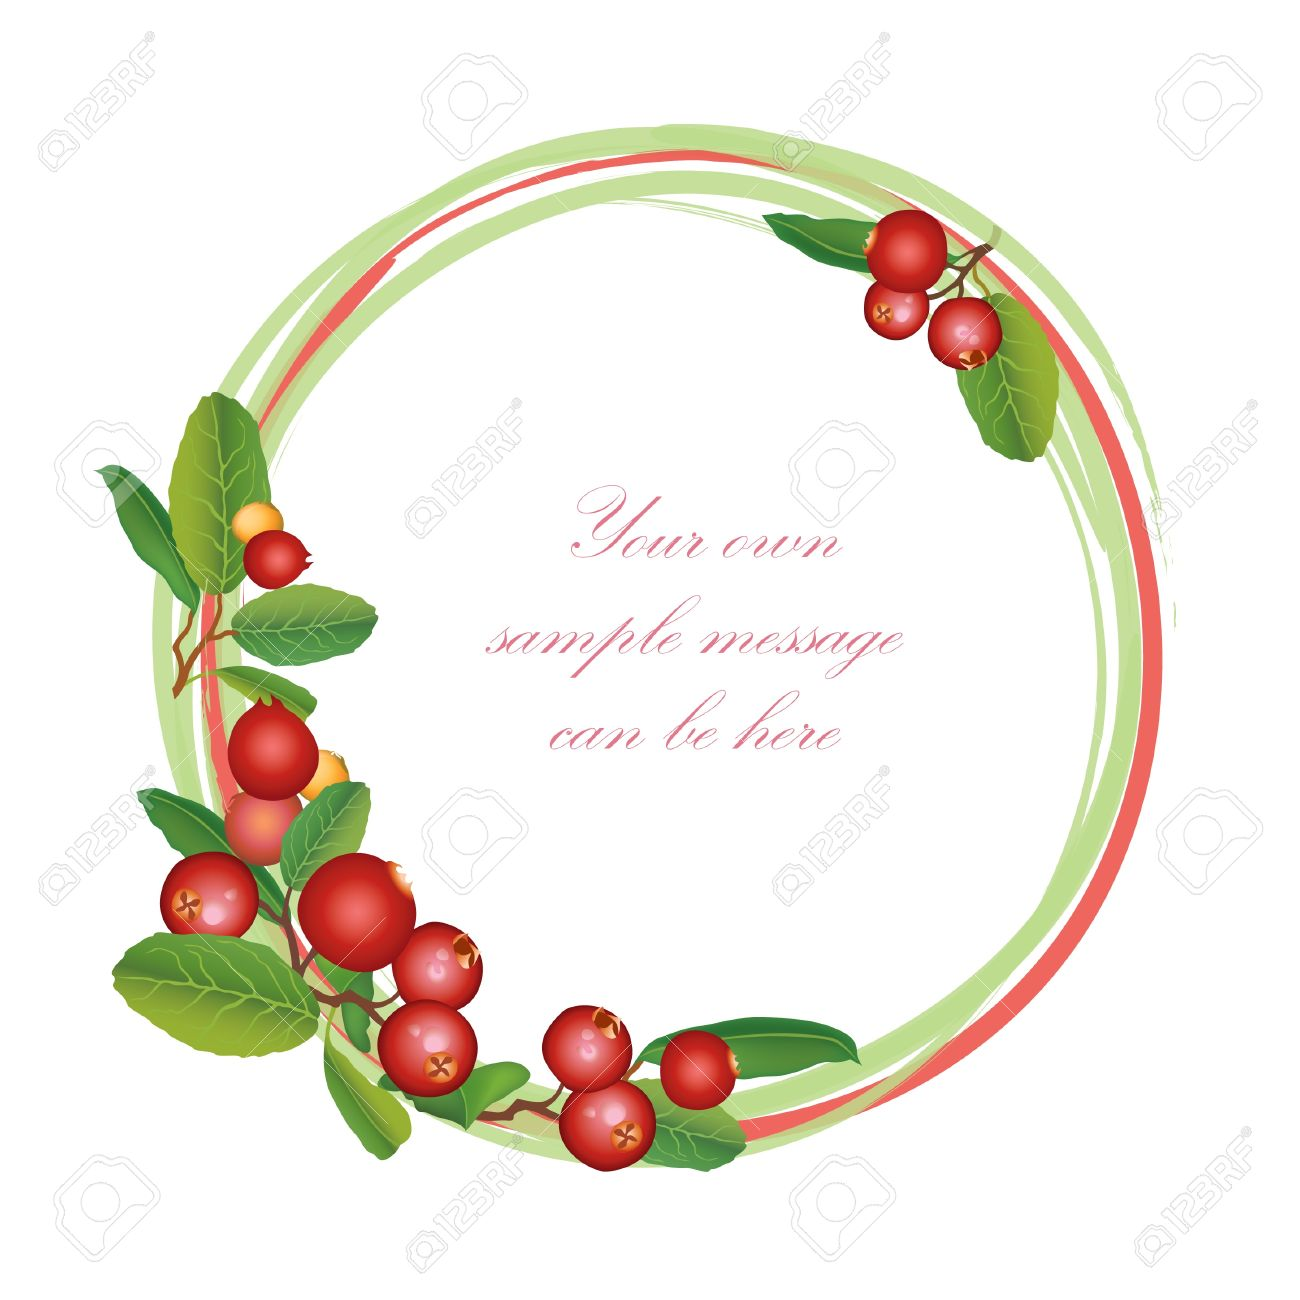 Cranberry frame  Berry round garland  Ripe red cranberries with leaves  Scandinavian card  Cowberries  illustration Stock Vector - 18320742